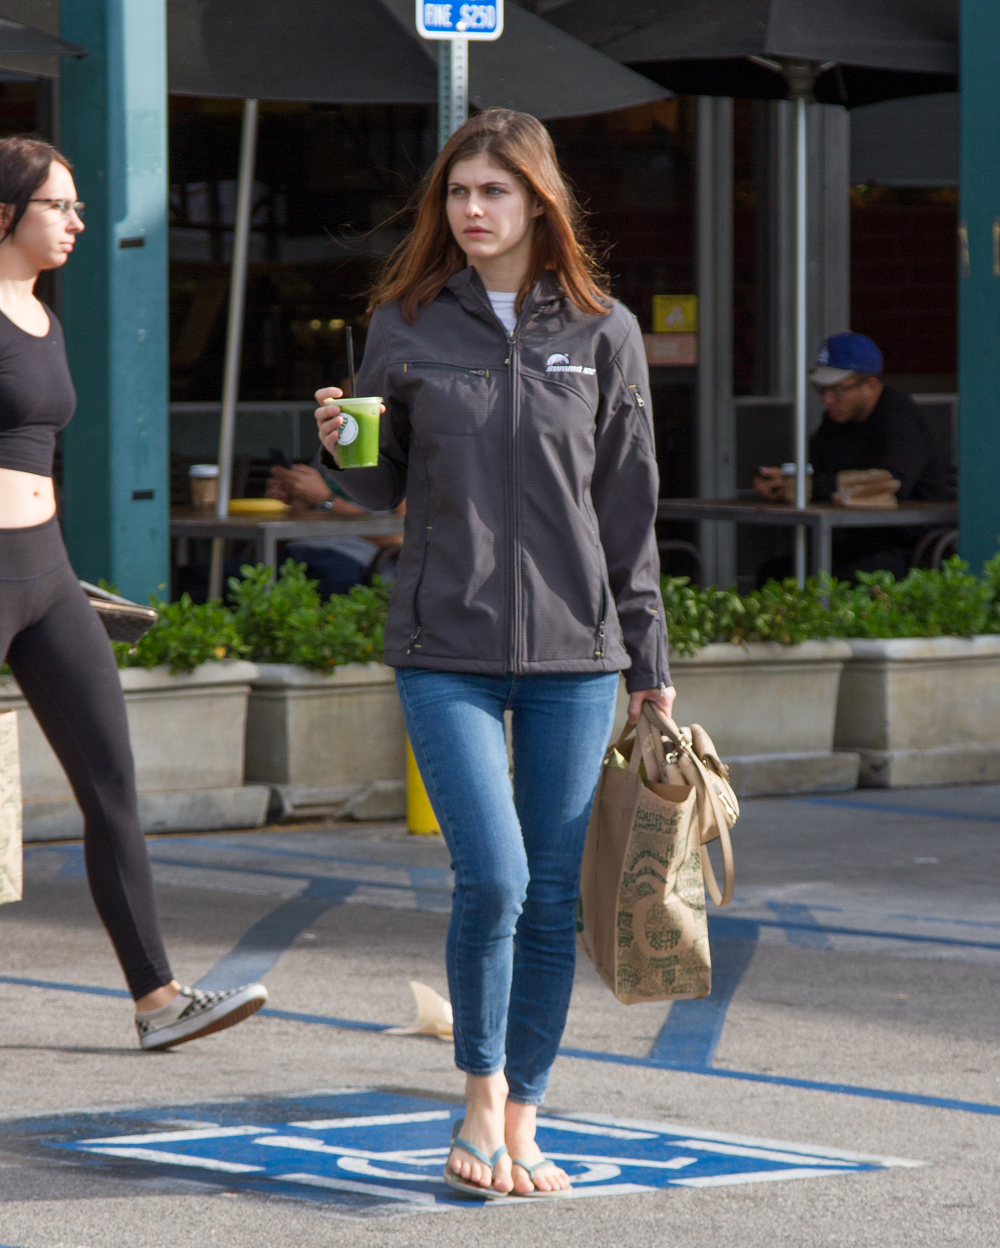 Alexandra Daddario  leaving Whole Foods with a healthy drink and a healthy awareness of one of history's worst genocides.